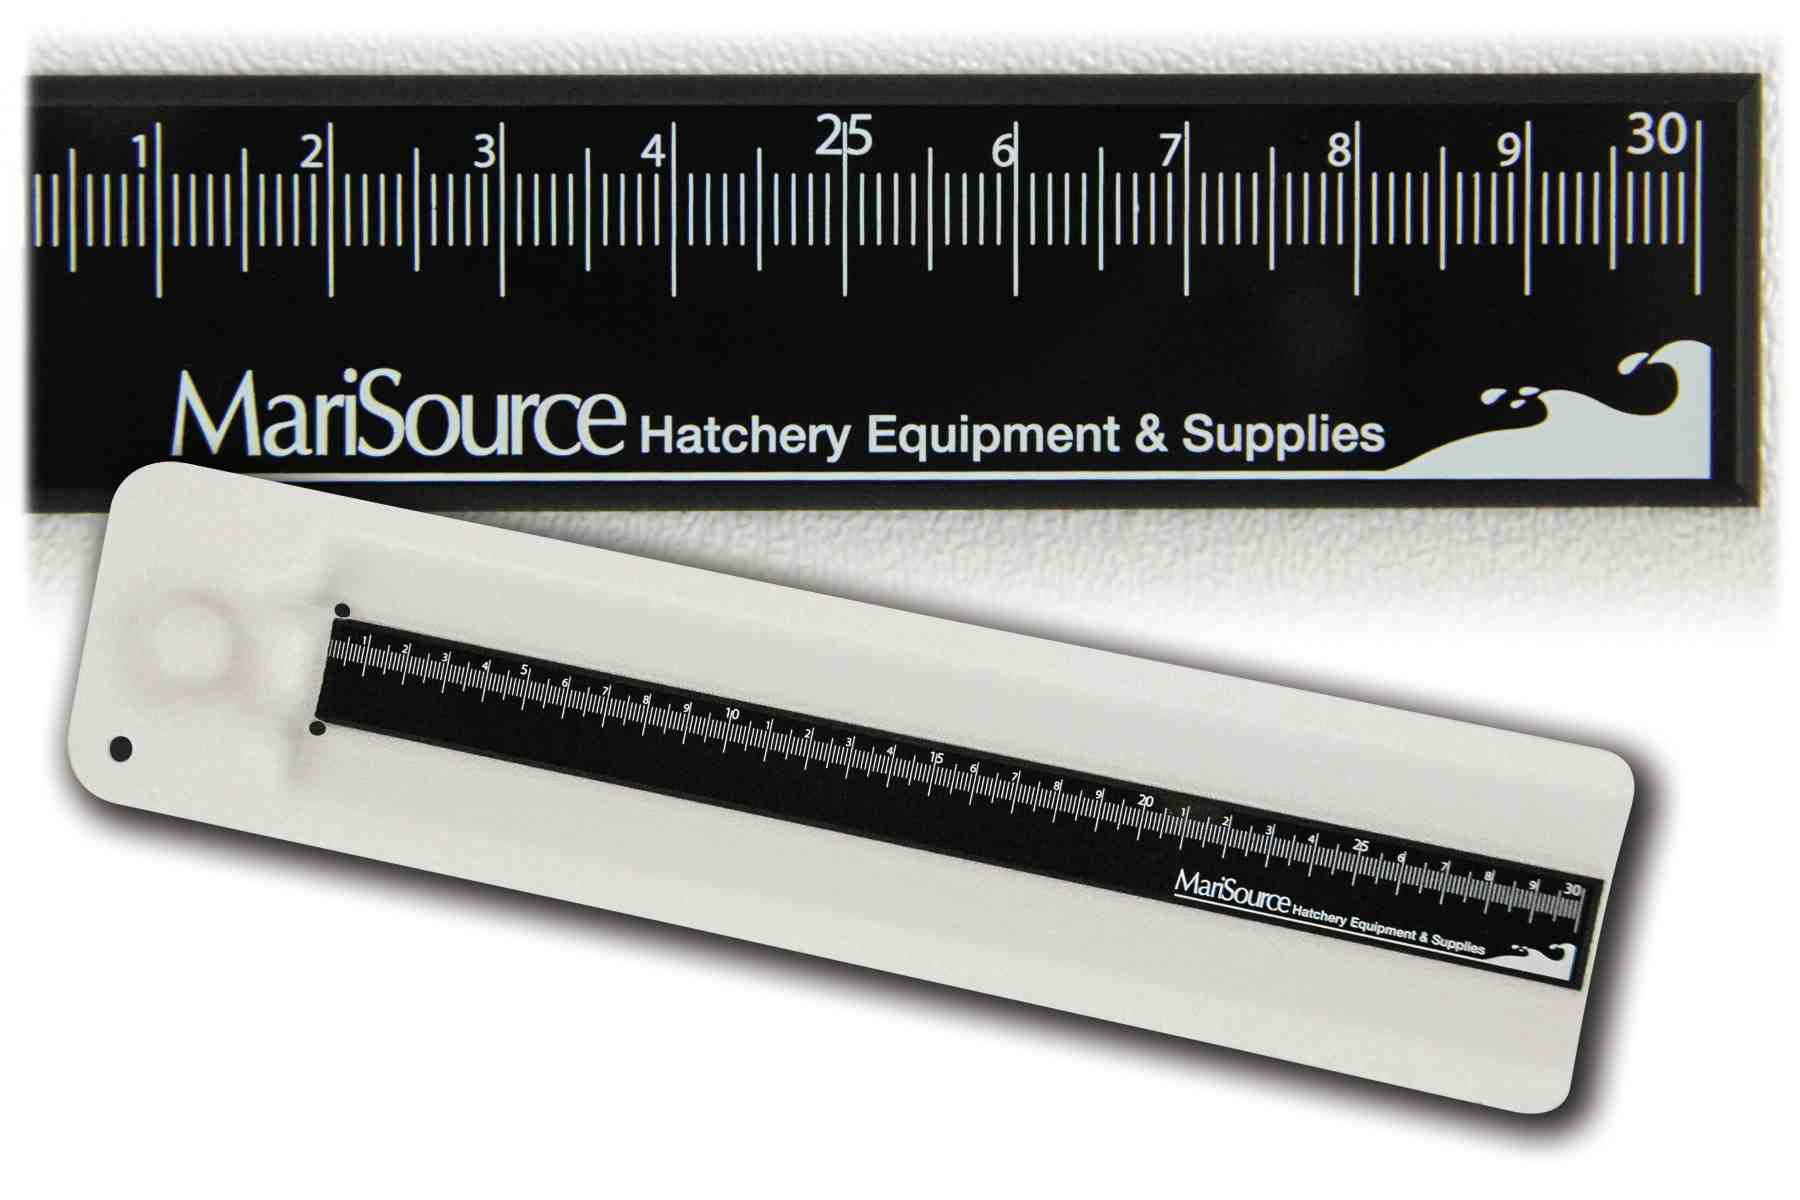 Dynamic aqua supply ltd fish handling equipment for Fish measuring board